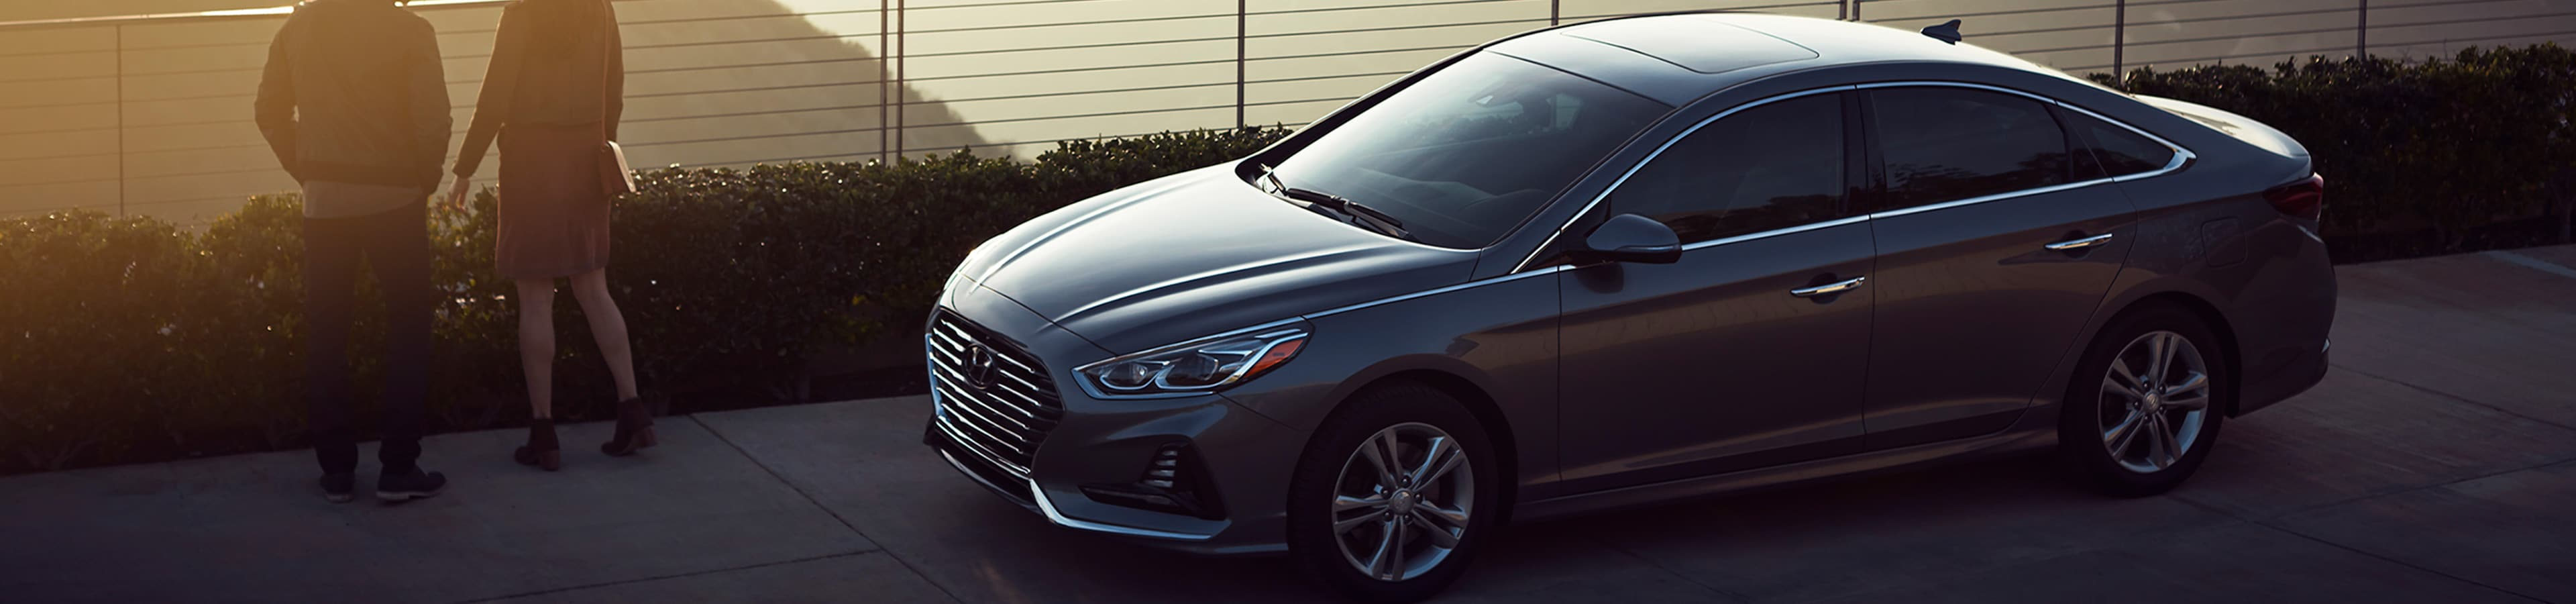 Hyundai motor finance lease hyundai canada for Hyundai motor vehicle finance